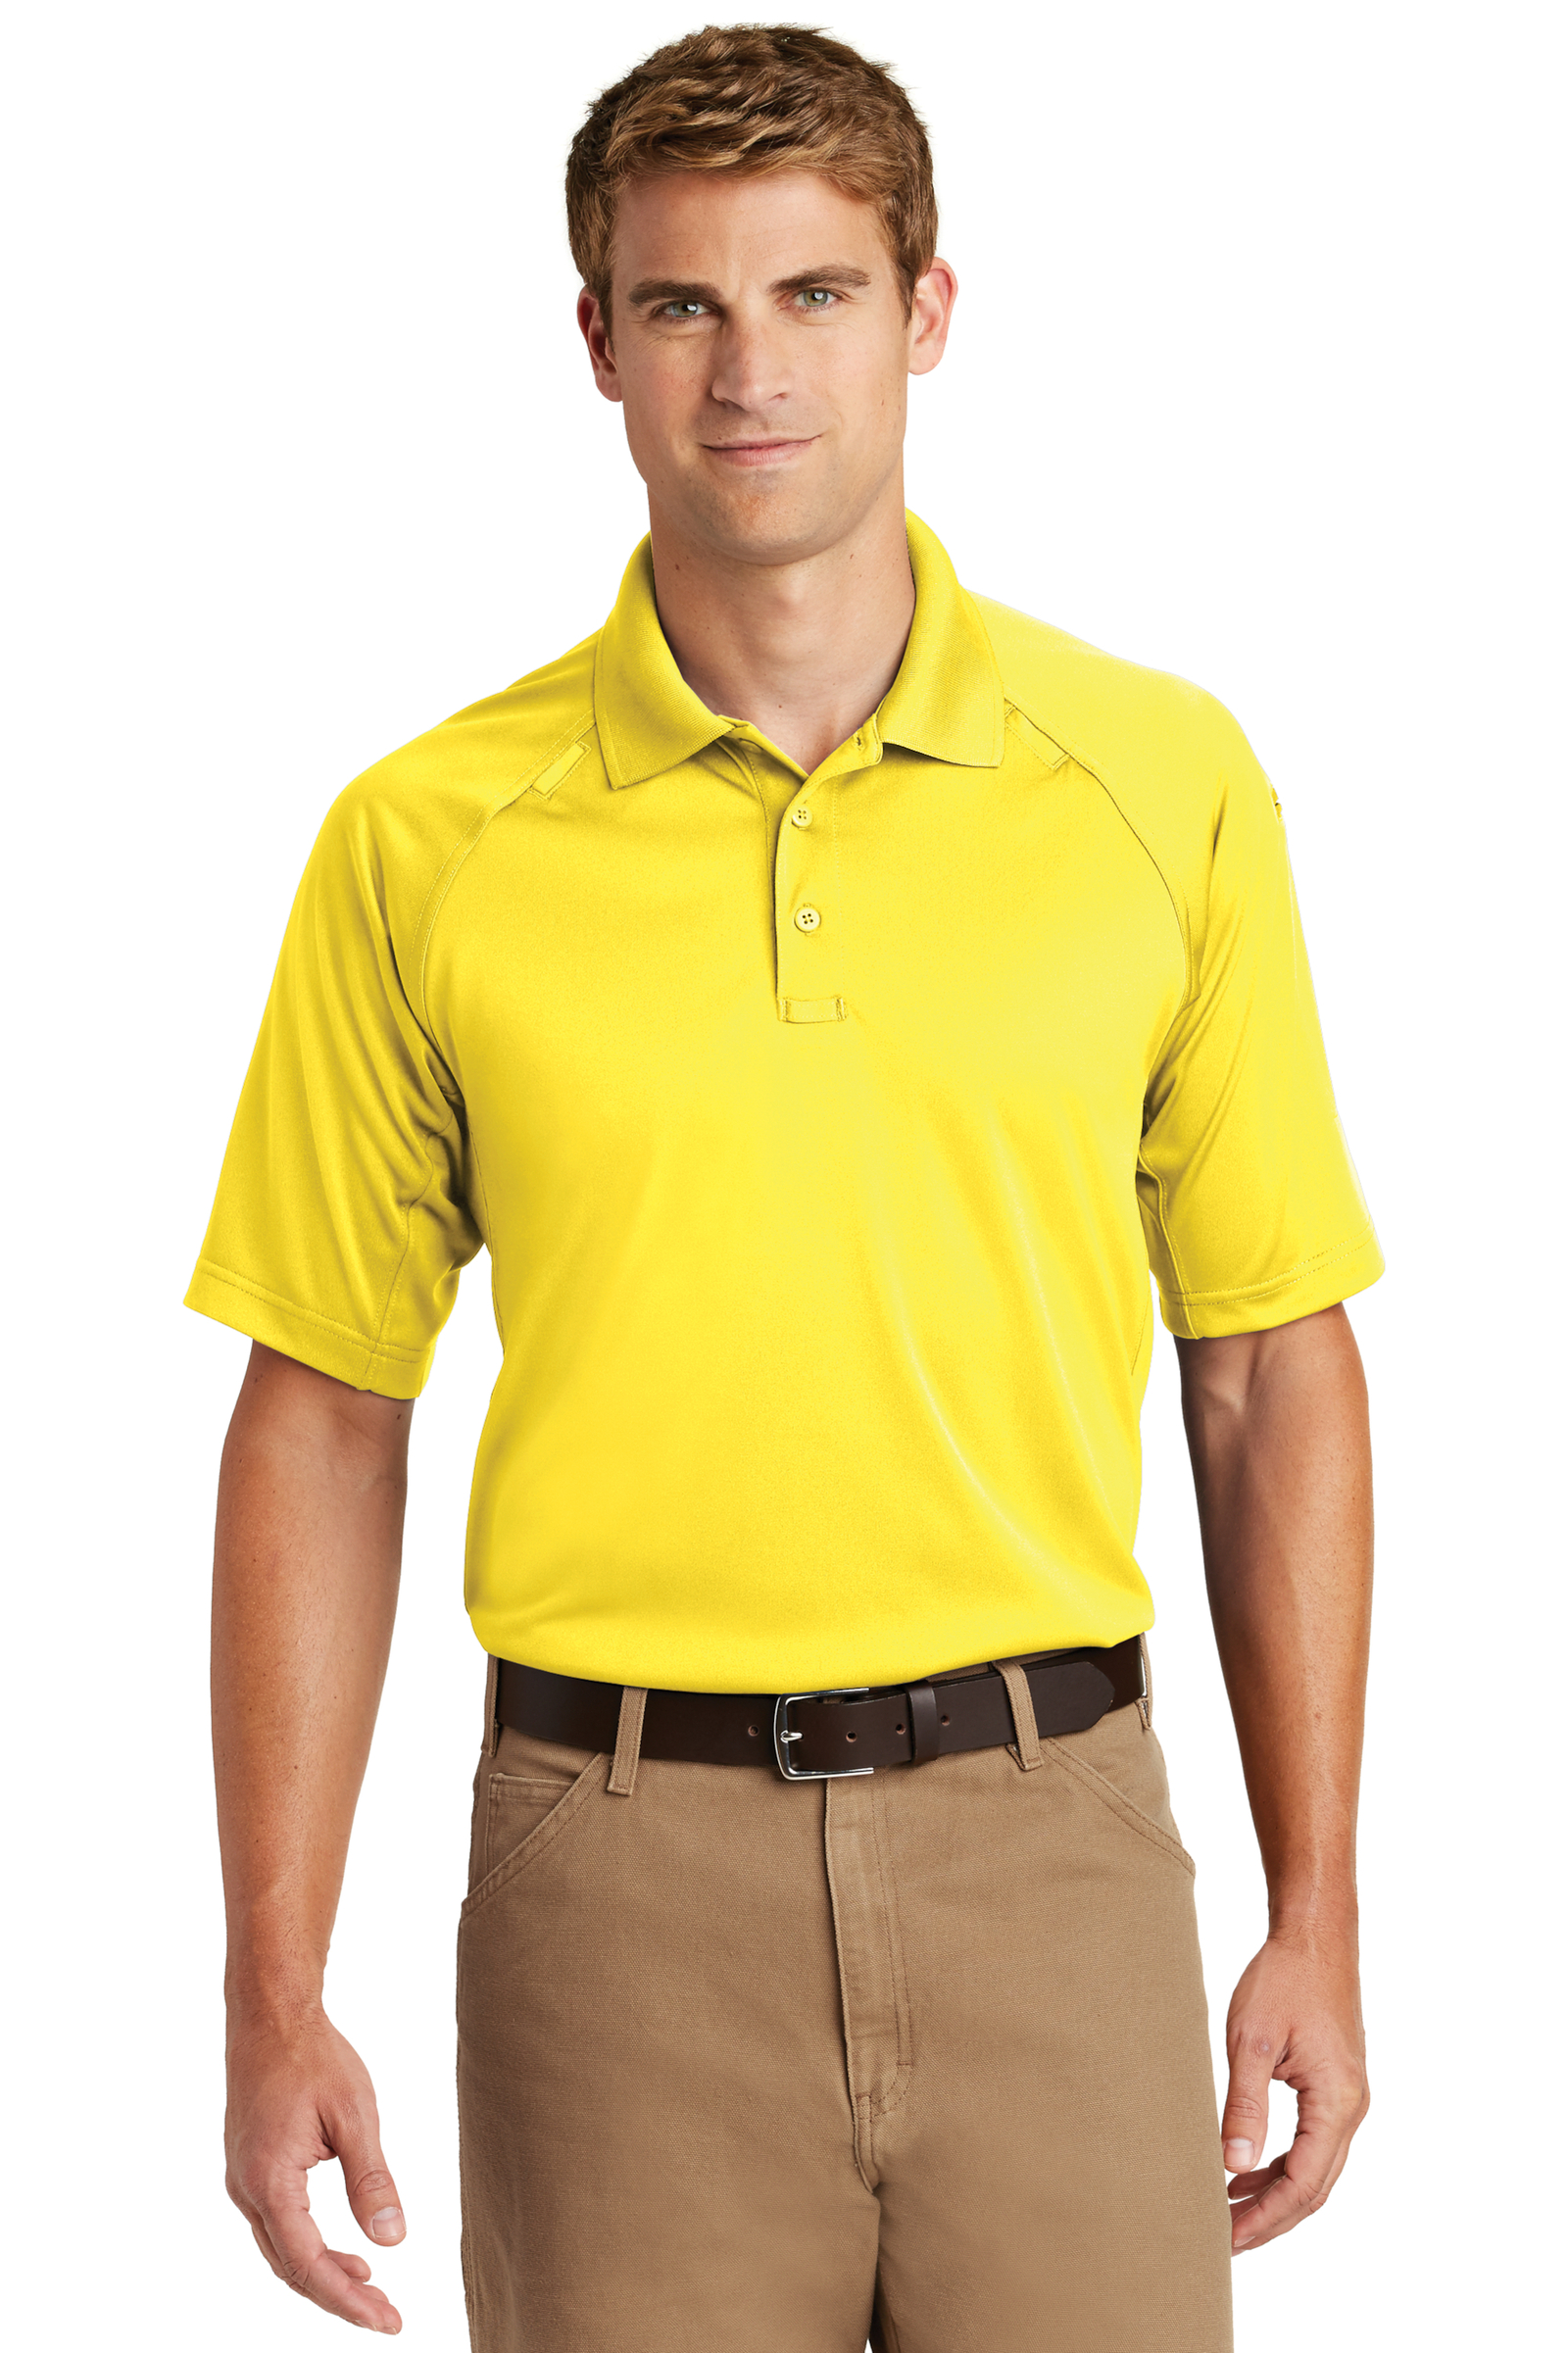 CornerStone Embroidered Men's Select Snag-Proof Tactical Polo